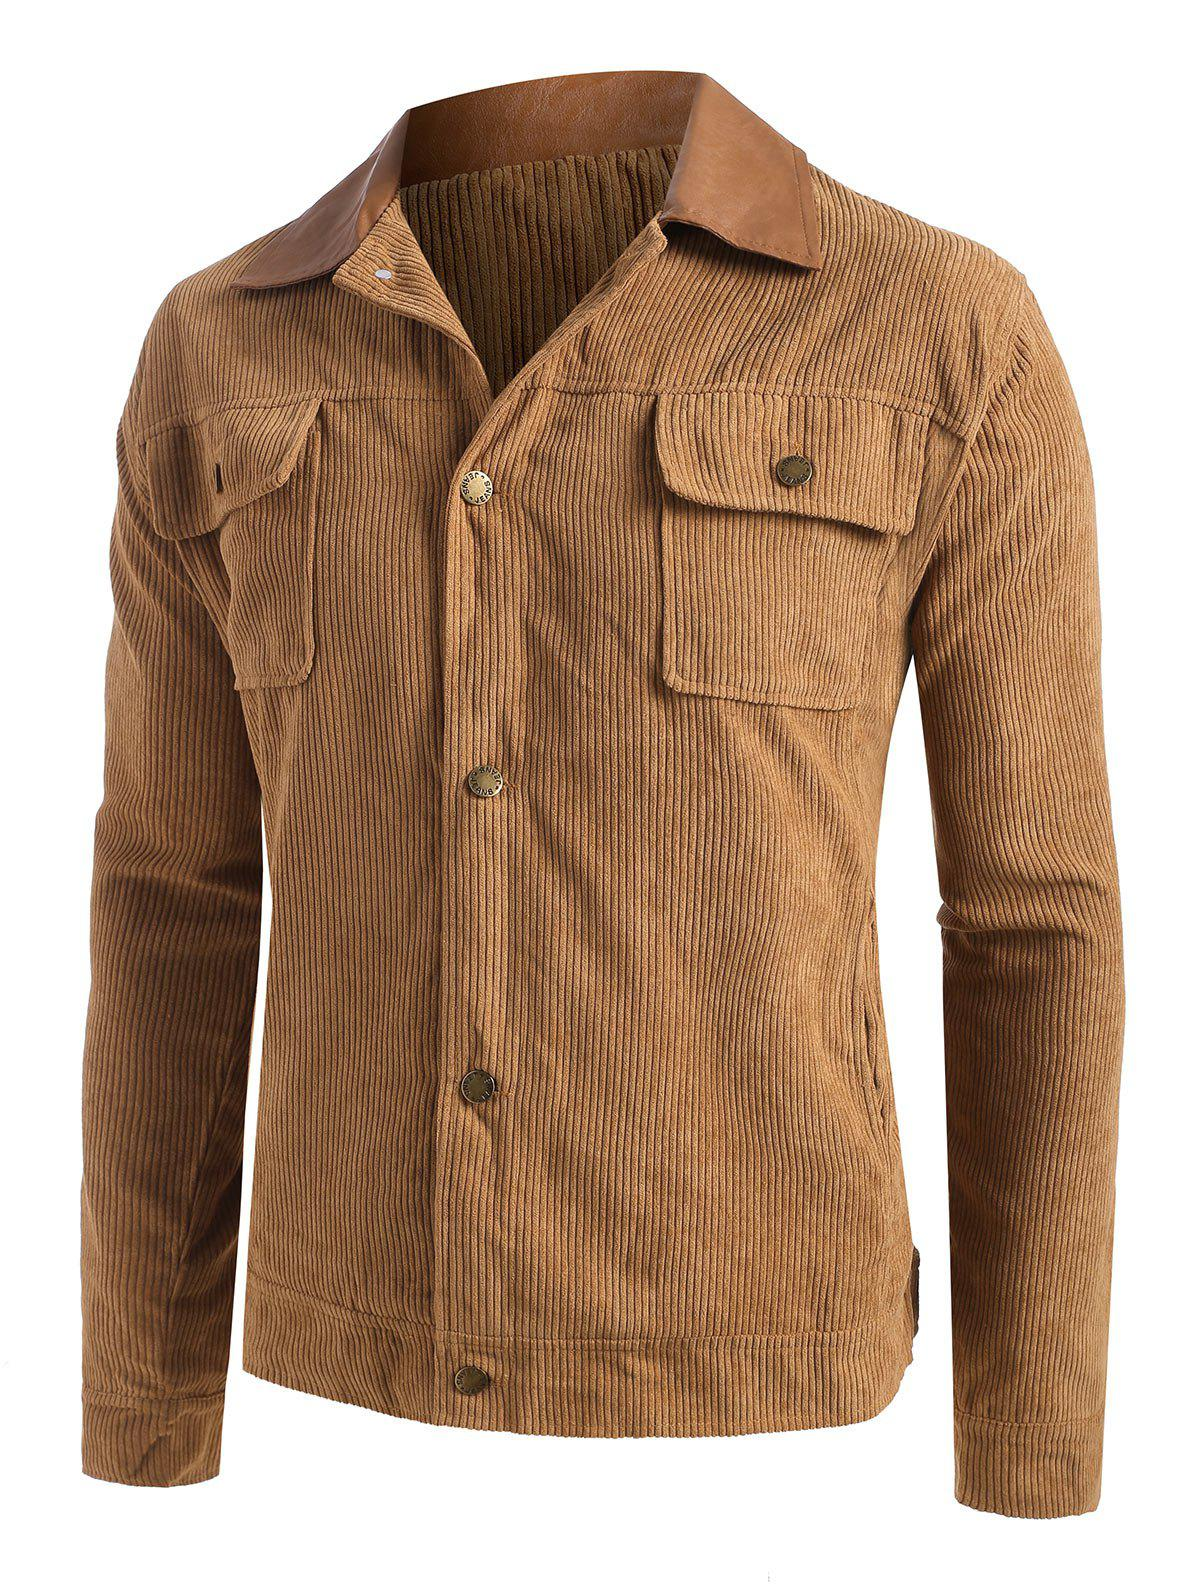 Button Up Ribbed Corduroy Jacket - CAMEL BROWN S